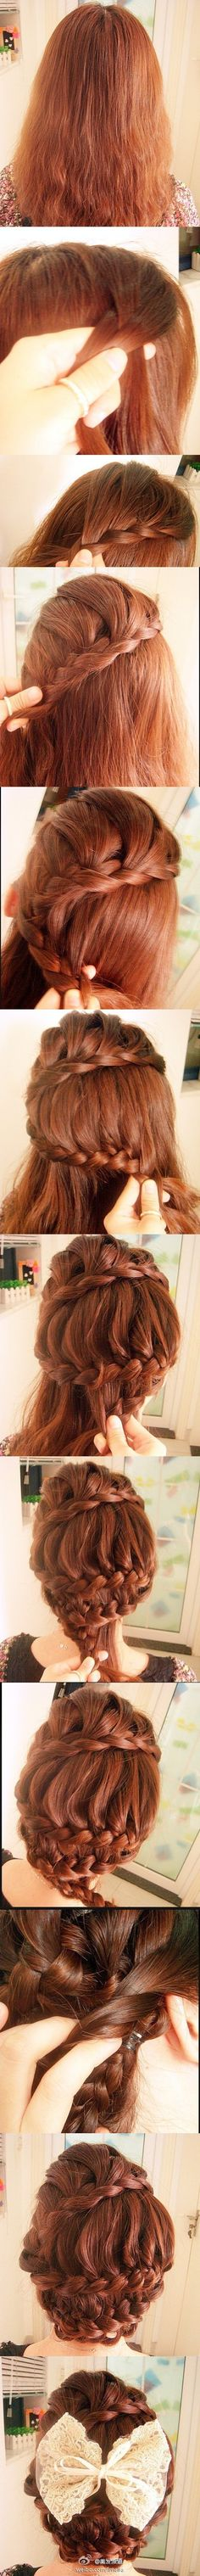 amazing hair braid/bun! minus the big bow , this is really a cute style. I would probably fit one more horizontal braid in before bringing it together at the bottom to fill in the gap. Pretty !